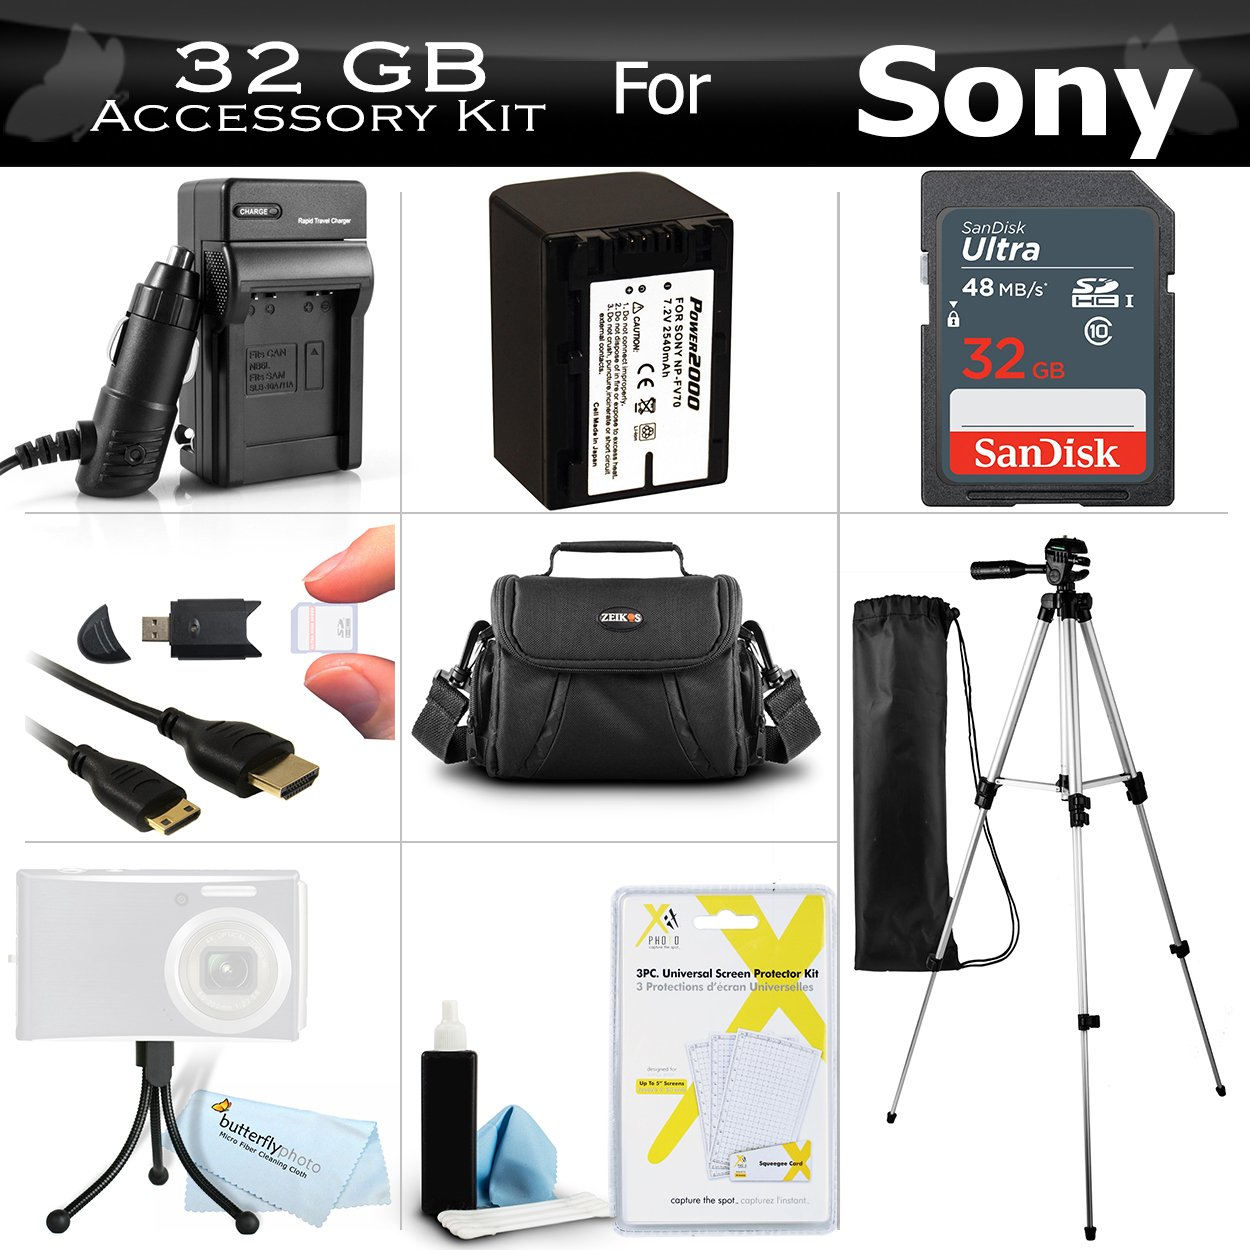 32GB Accessory Kit For Sony HDR-XR260V, HDR-TD20V, HDR-CX190, HDR-CX210 High Definition Handycam Camcorder Includes 32GB High Speed SD Memory Card + Replacement (2300Mah) NP-FV70 Battery + Ac / DC Charger + Deluxe Case + Tripod + Mini HDMI Cable + More